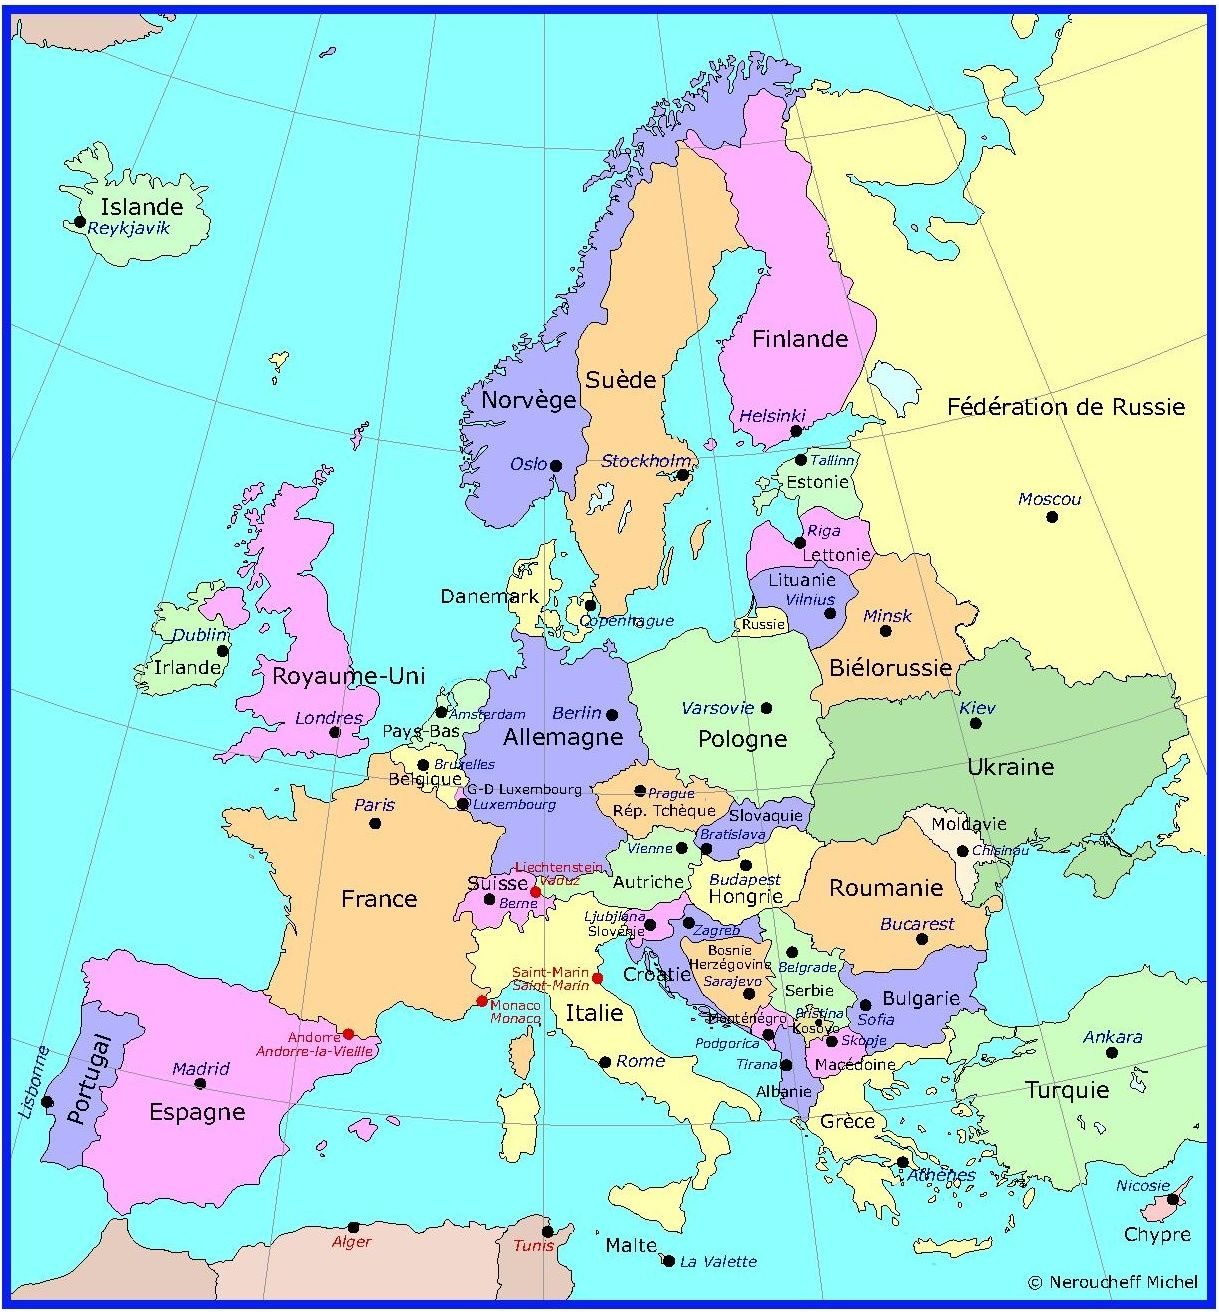 Carte Capitales Des Pays D'europe (Avec Images) | Capital destiné Carte Europe Avec Capitales